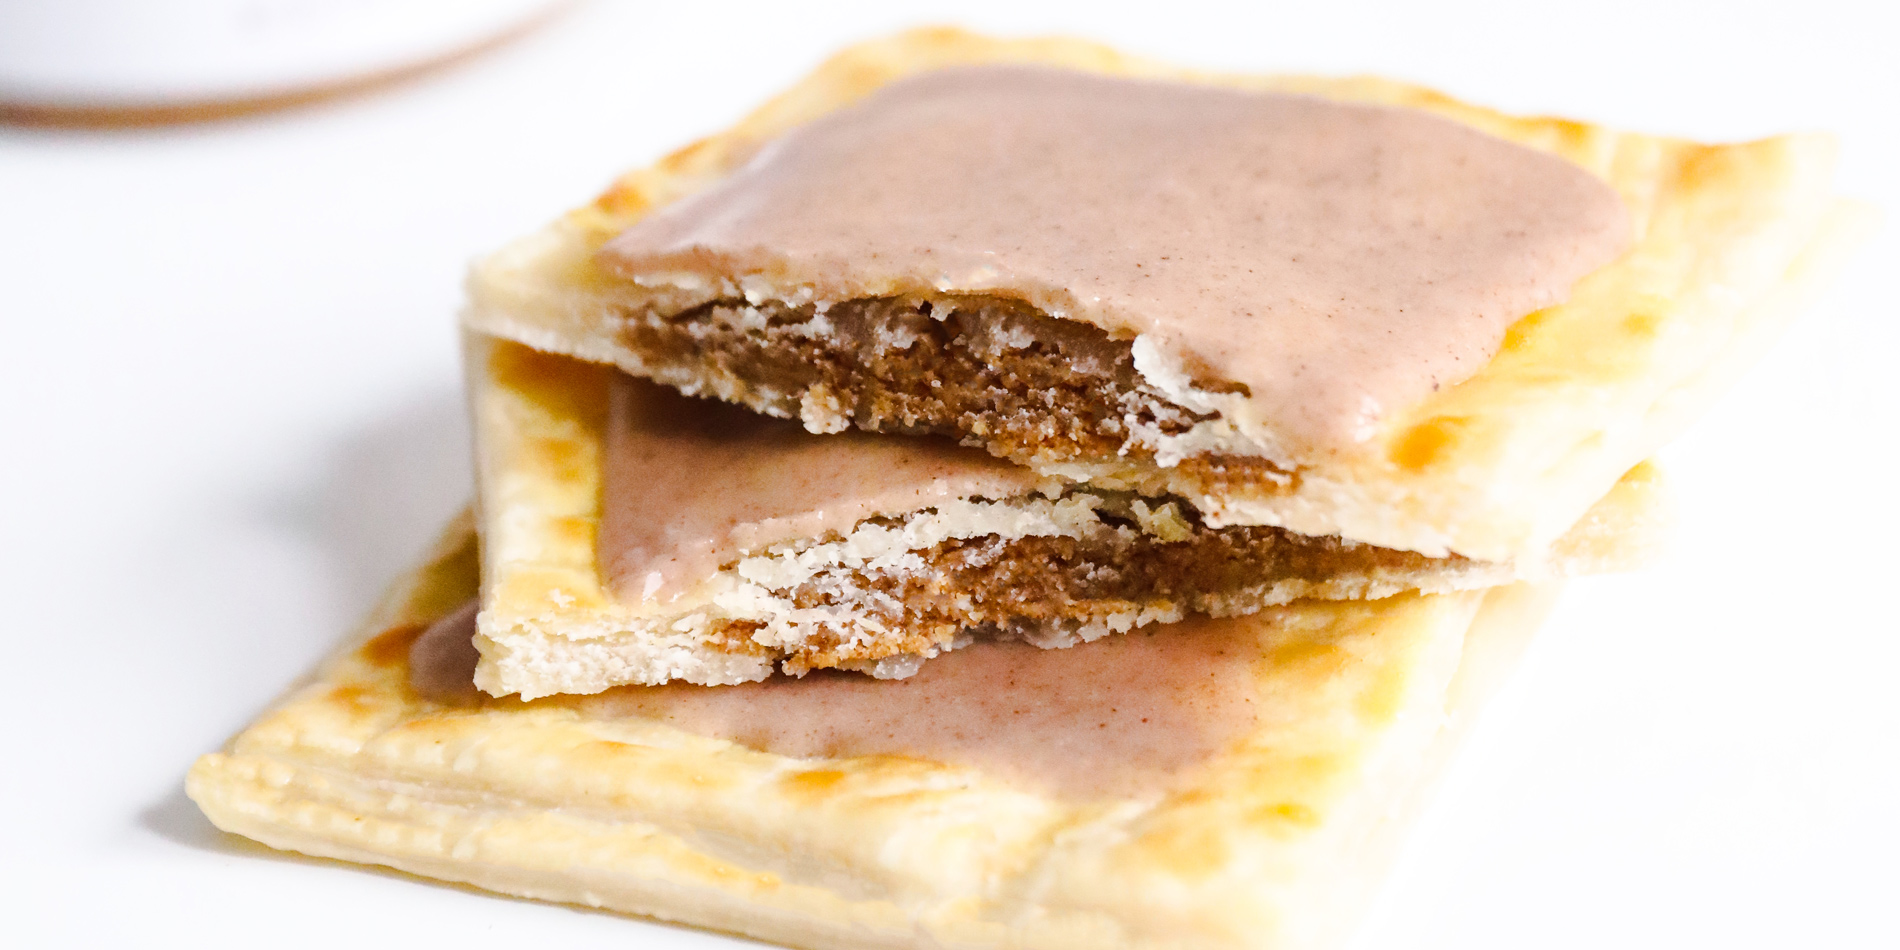 Brown Sugar Cinnamon Almond Butter Toaster Pastries stacked on top of each other on a white background